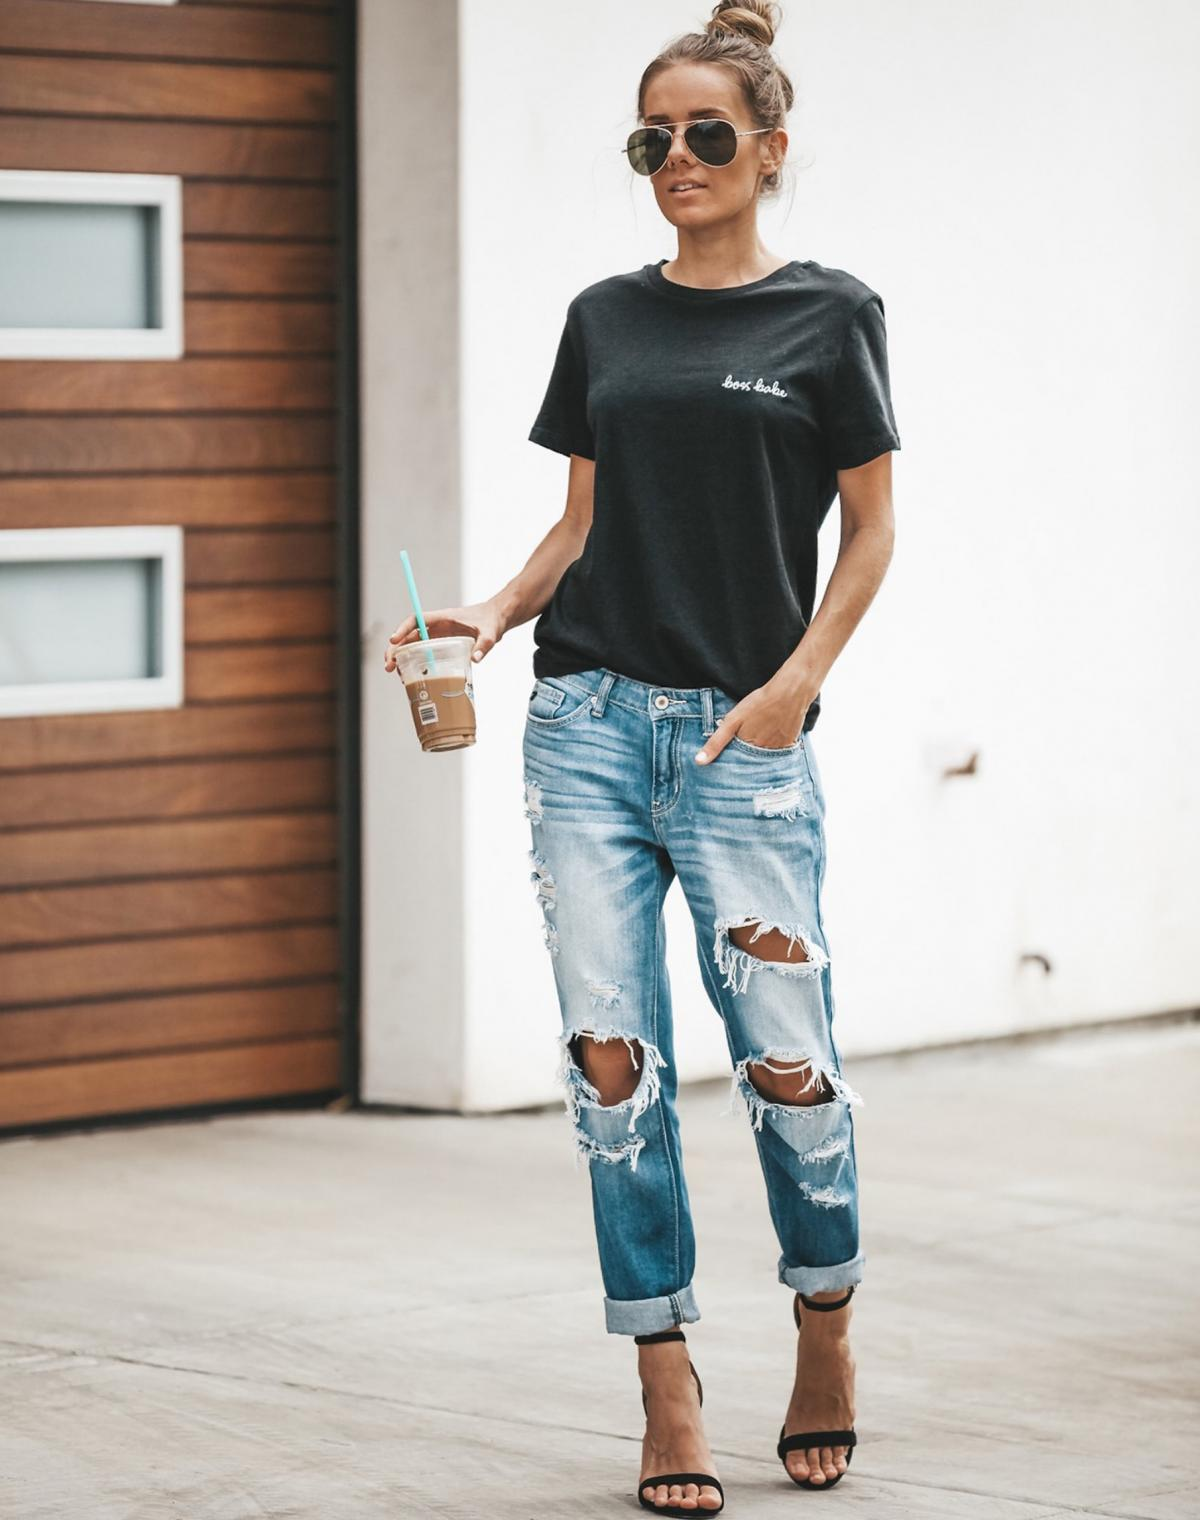 A wide-cut tee and ripped jeans and you're ready for a lazy weekend